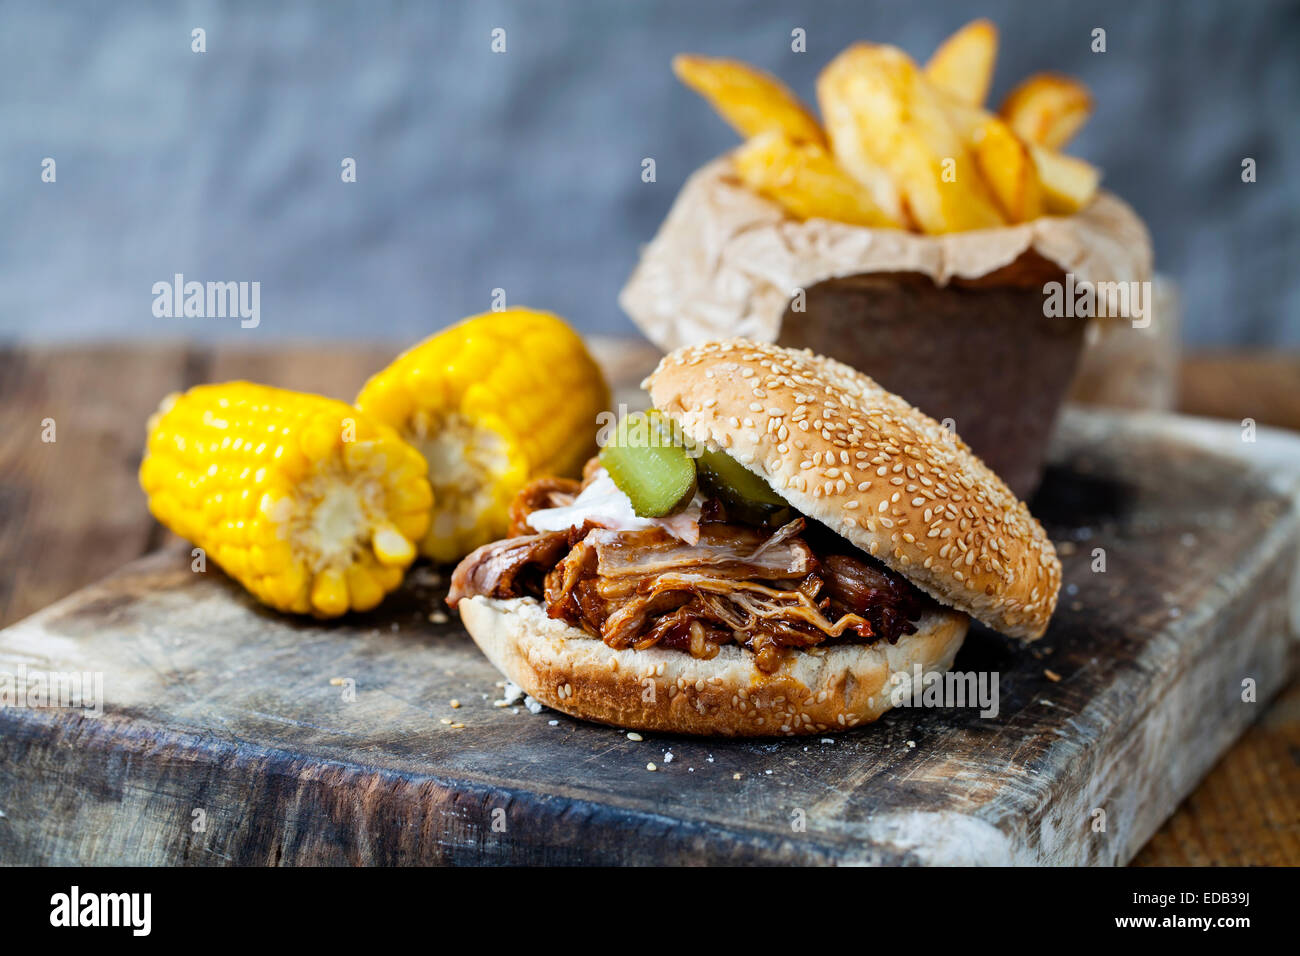 Burger with pulled pork, sweetcorn and chips - Stock Image